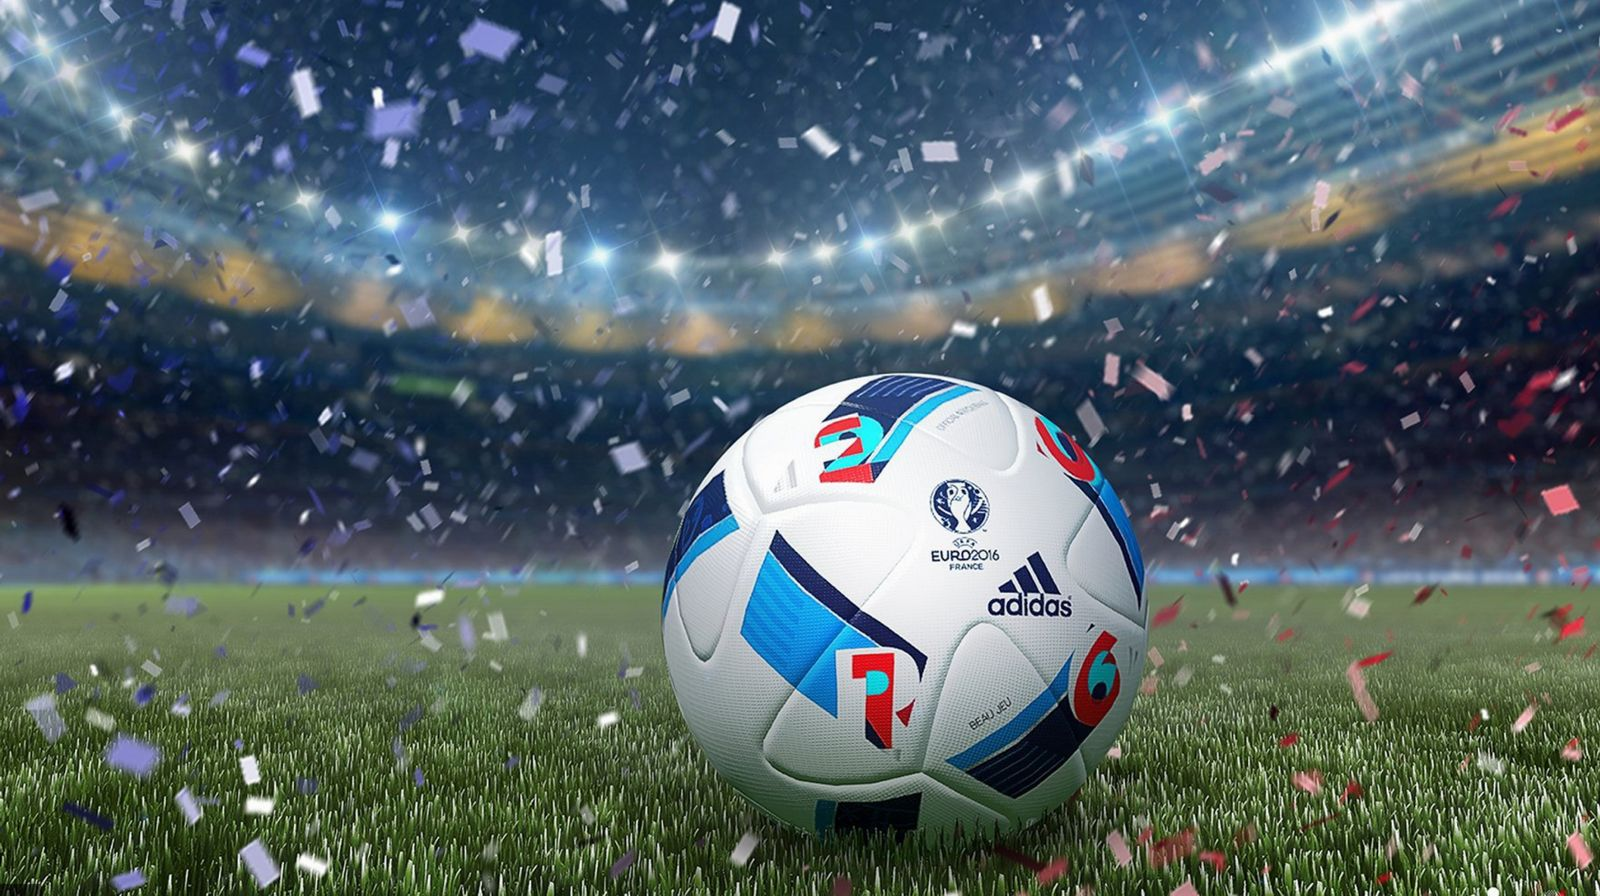 HD wallpaper for desktop football